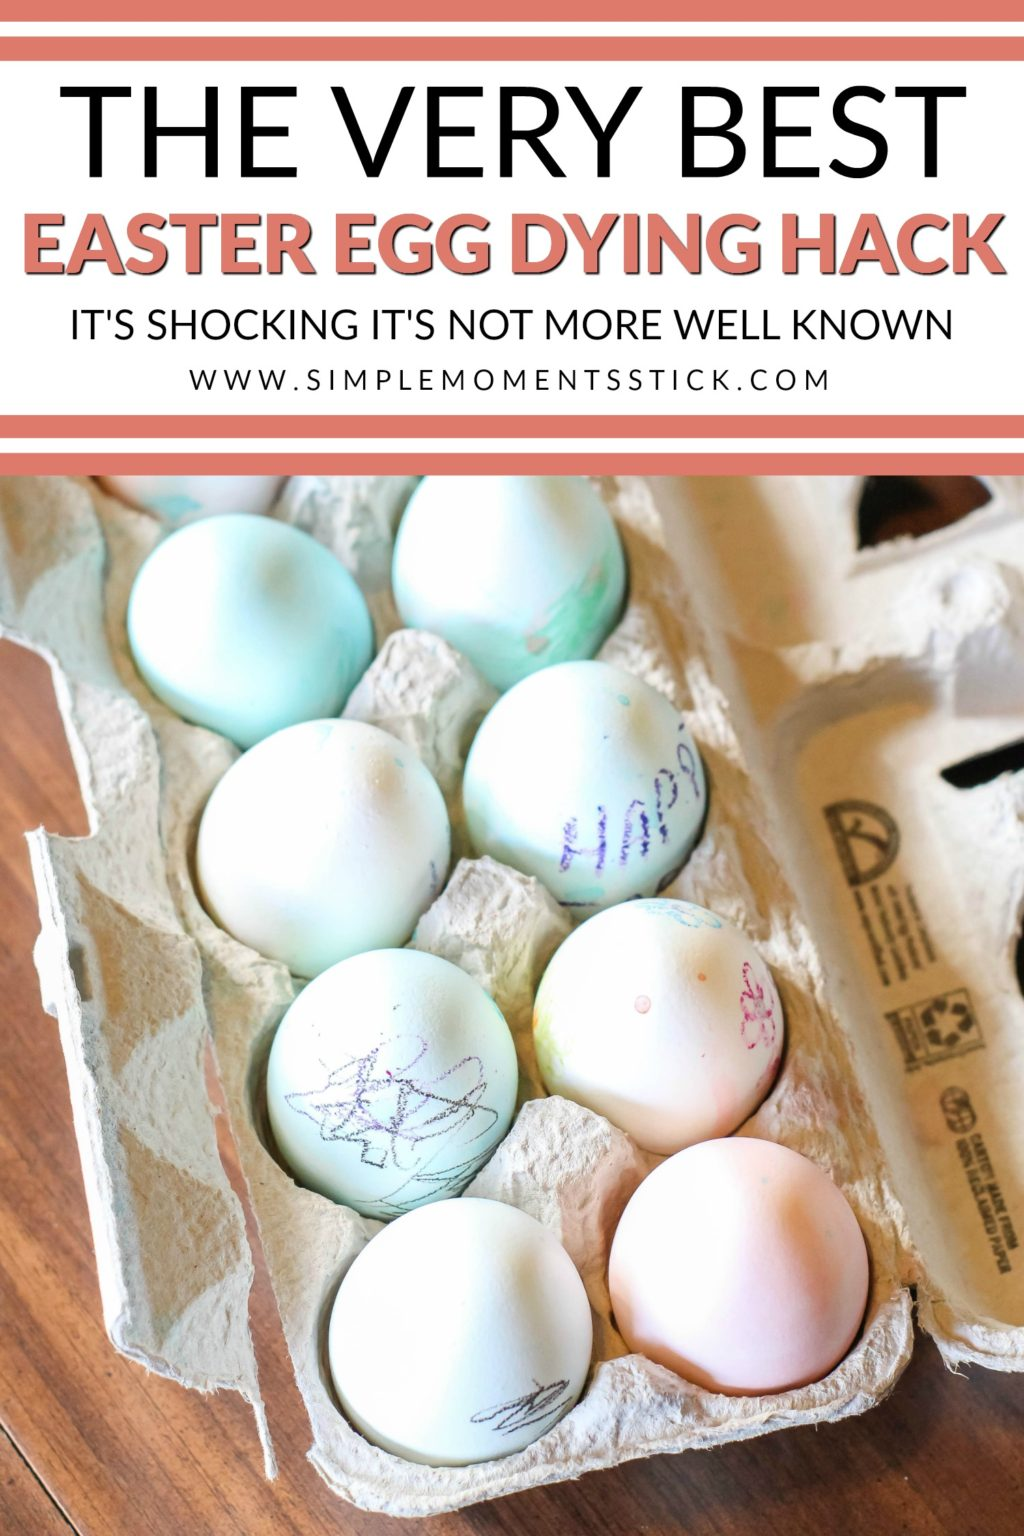 Sometimes Easter egg dying is too messy! Check out this Easter egg dying hack and find out how to dye Easter eggs without the mess!